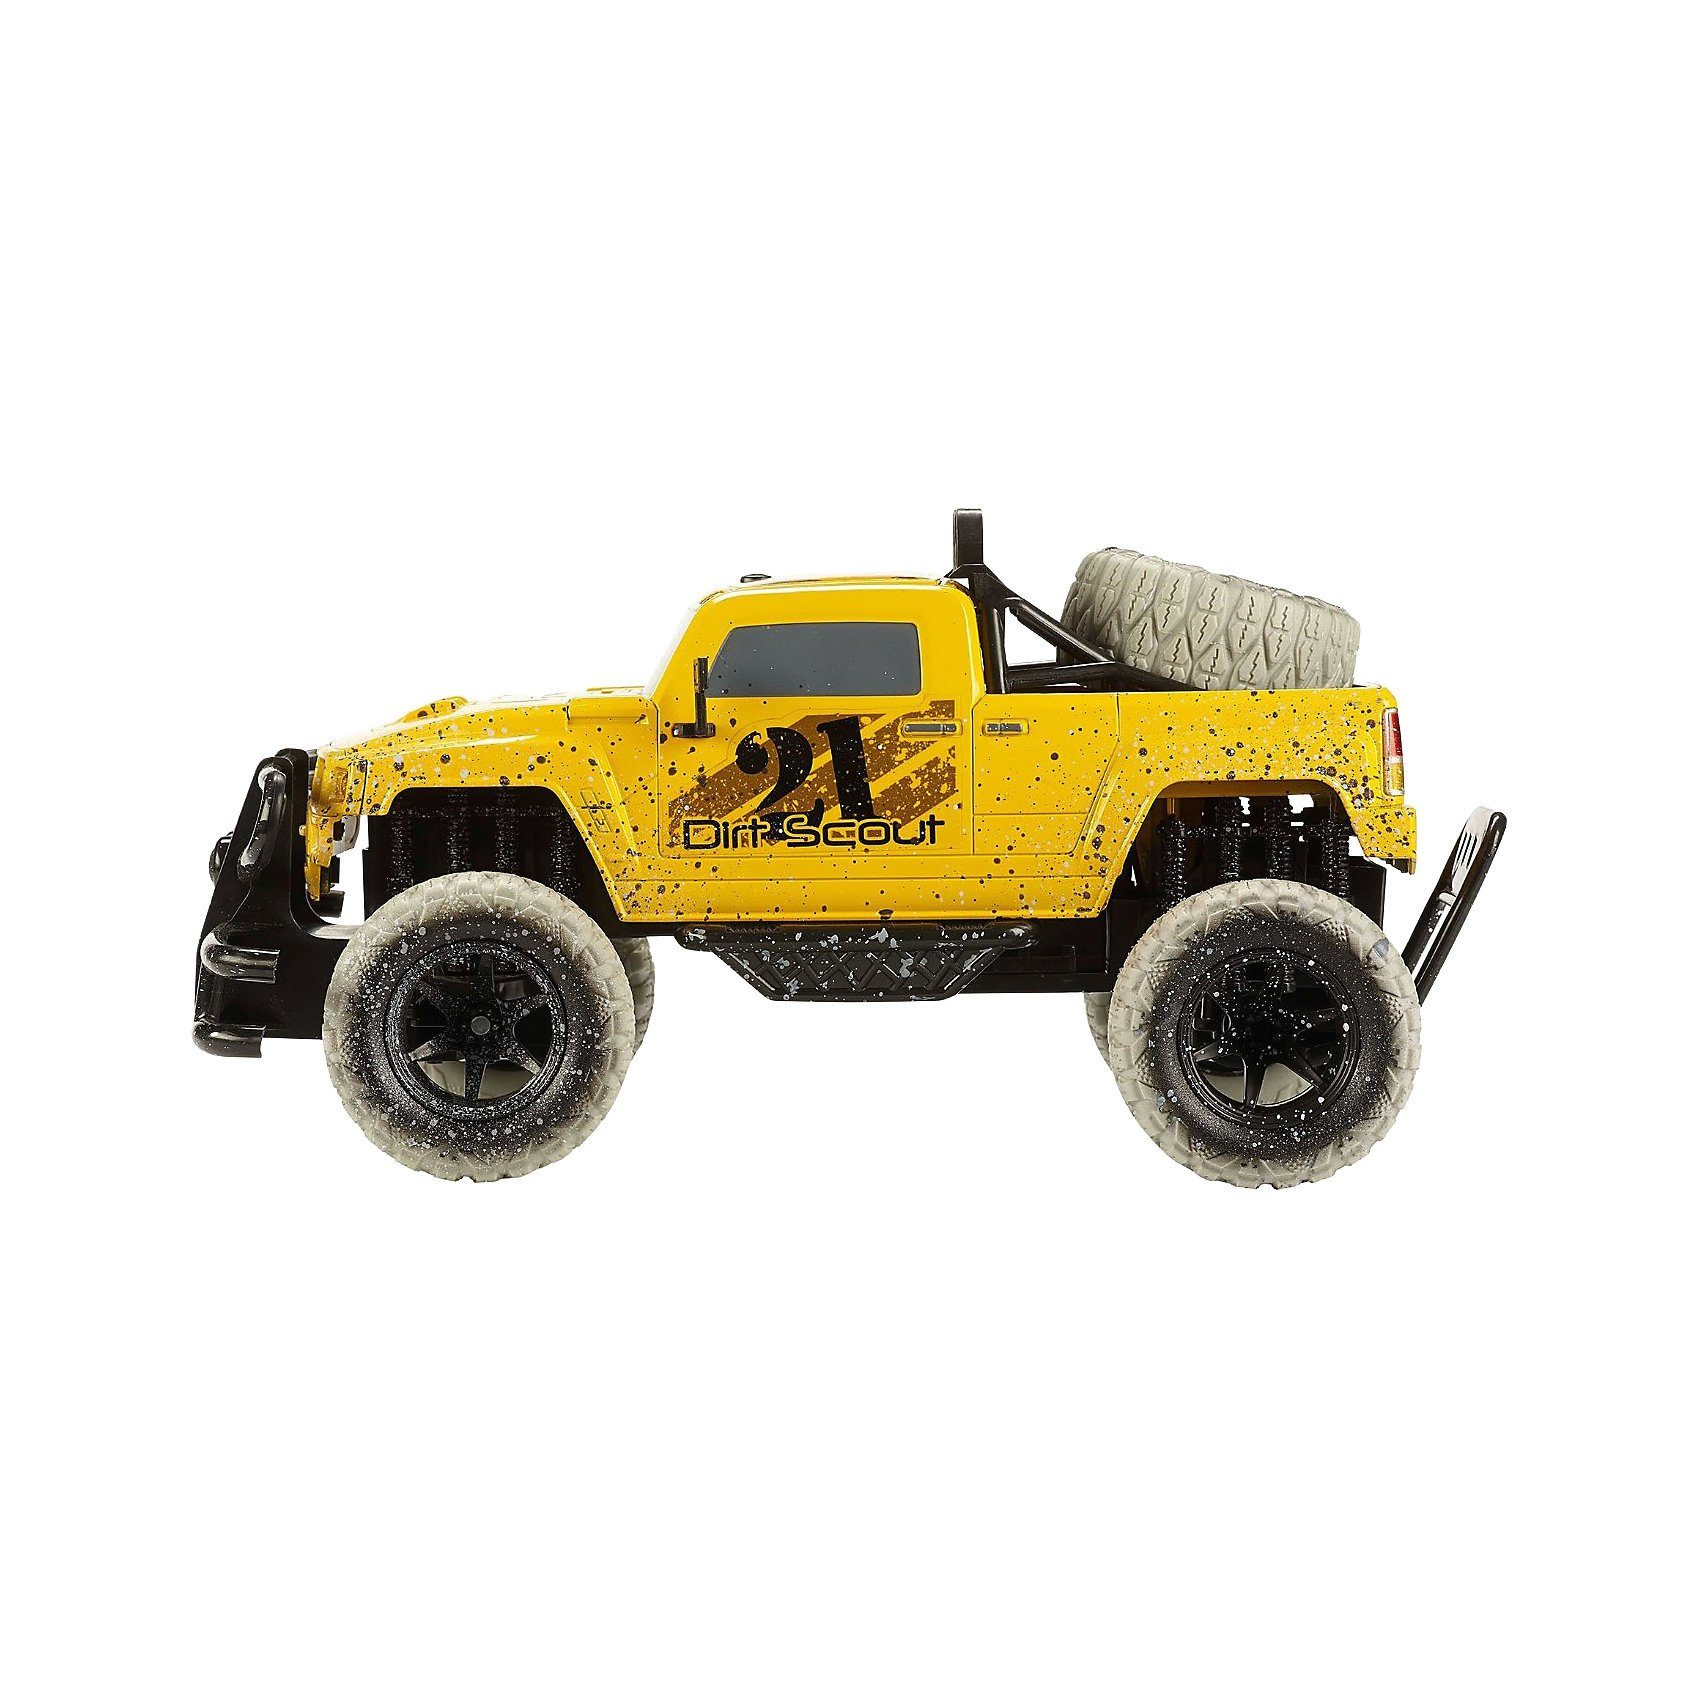 "Revell Control Buggy ""DIRT SCOUT"""